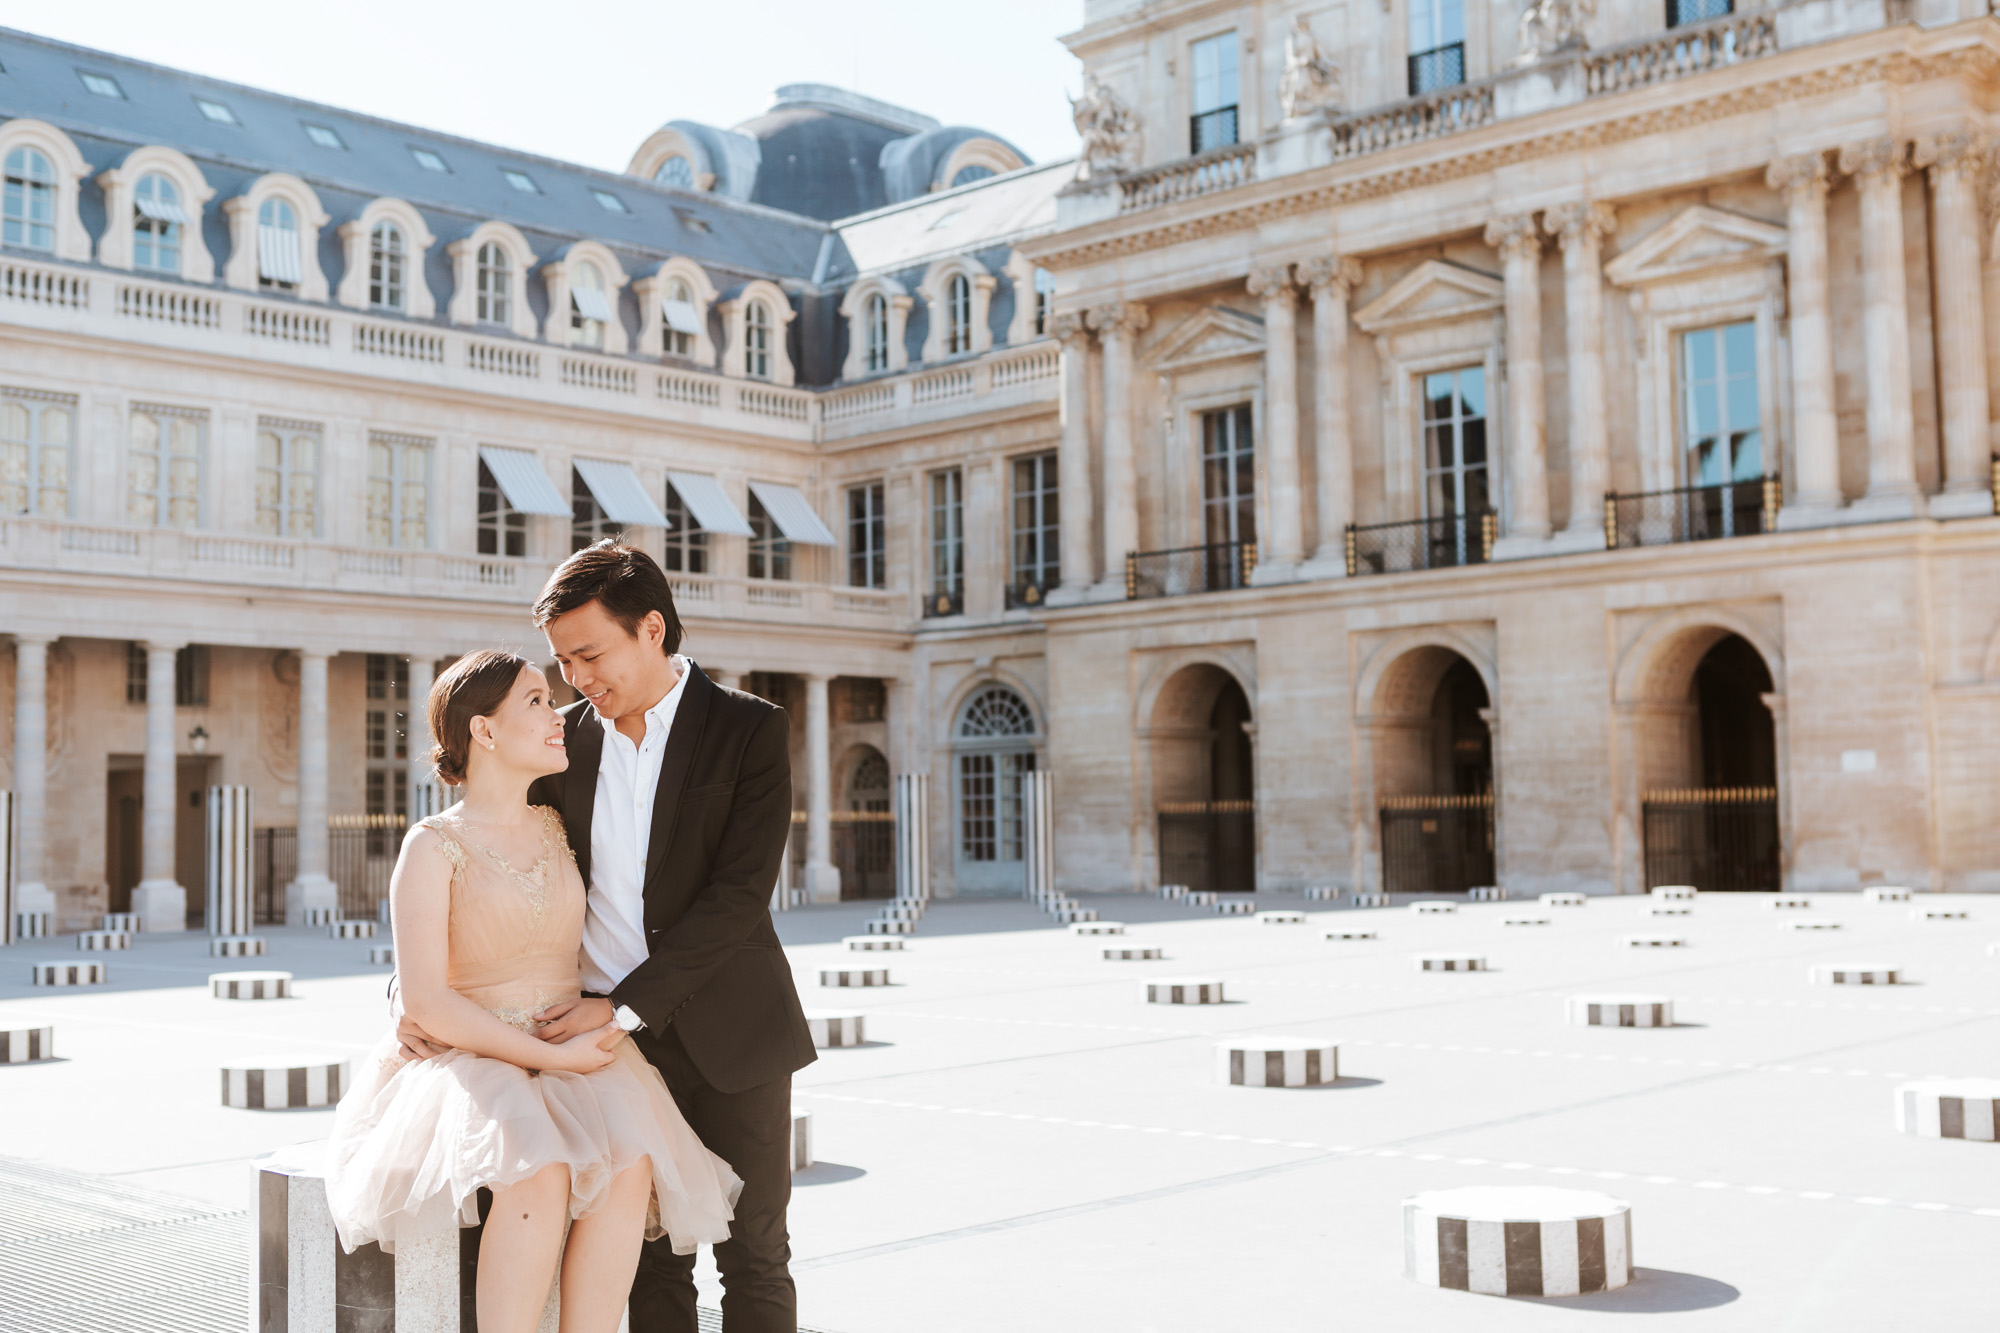 Pre-wedding couple portrait sitting in the courtyard of Palais Royal captured by Paris Photographer Federico Guendel